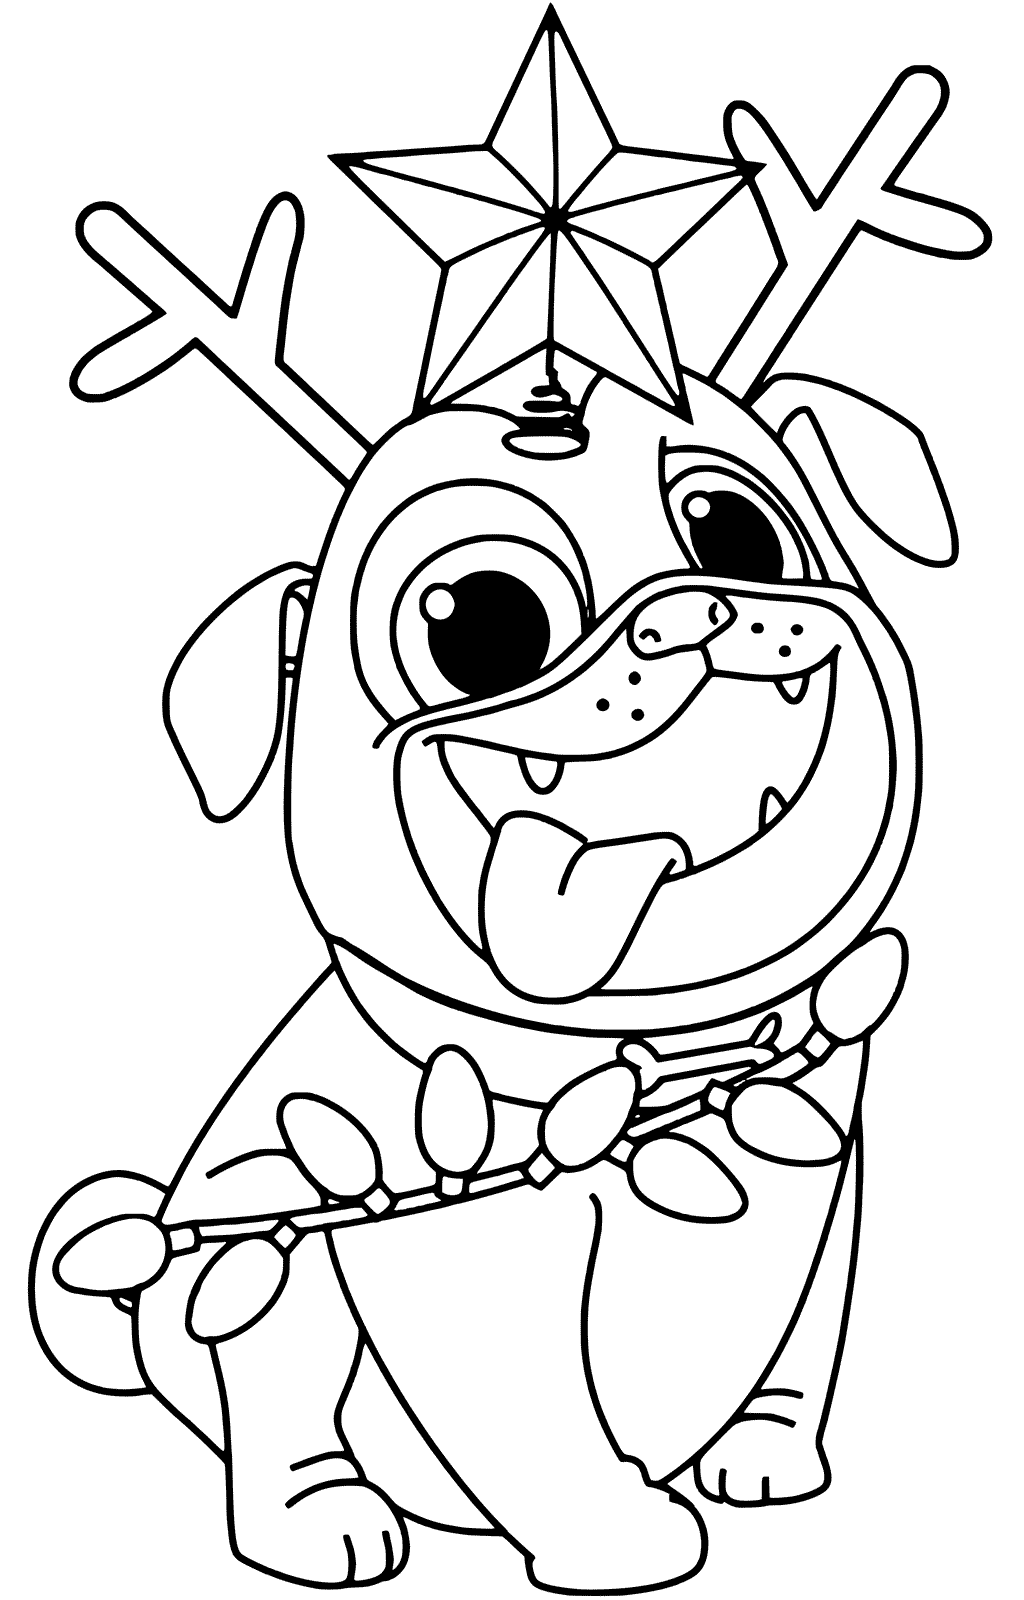 puppy pictures for coloring free printable dogs and puppies coloring pages for kids puppy for coloring pictures